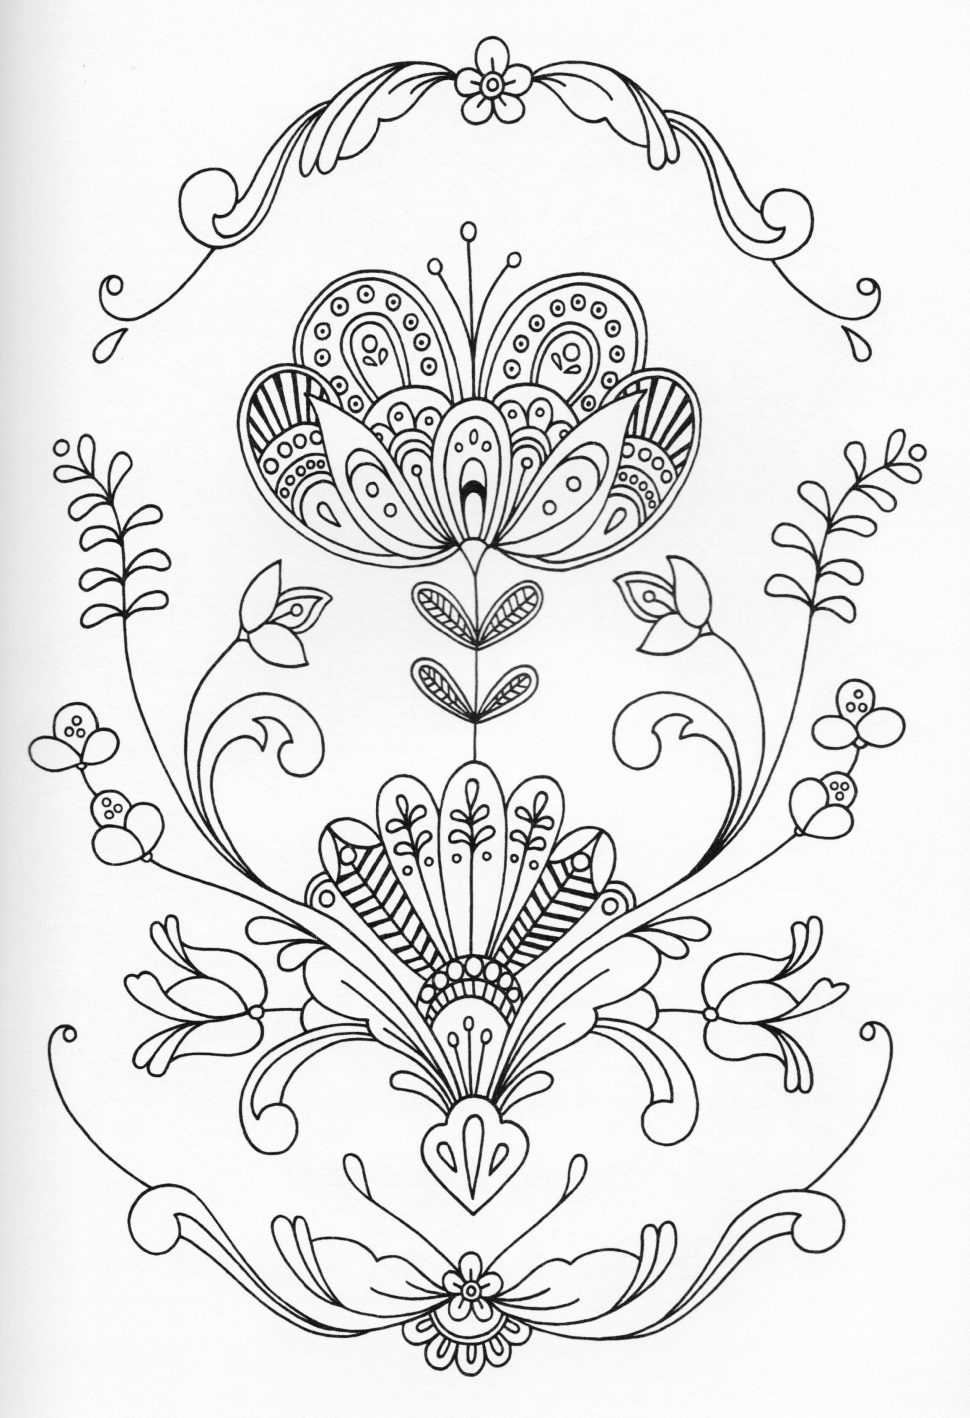 970x1418 Coloring Adult Coloring Page Inspiration Scandinavian